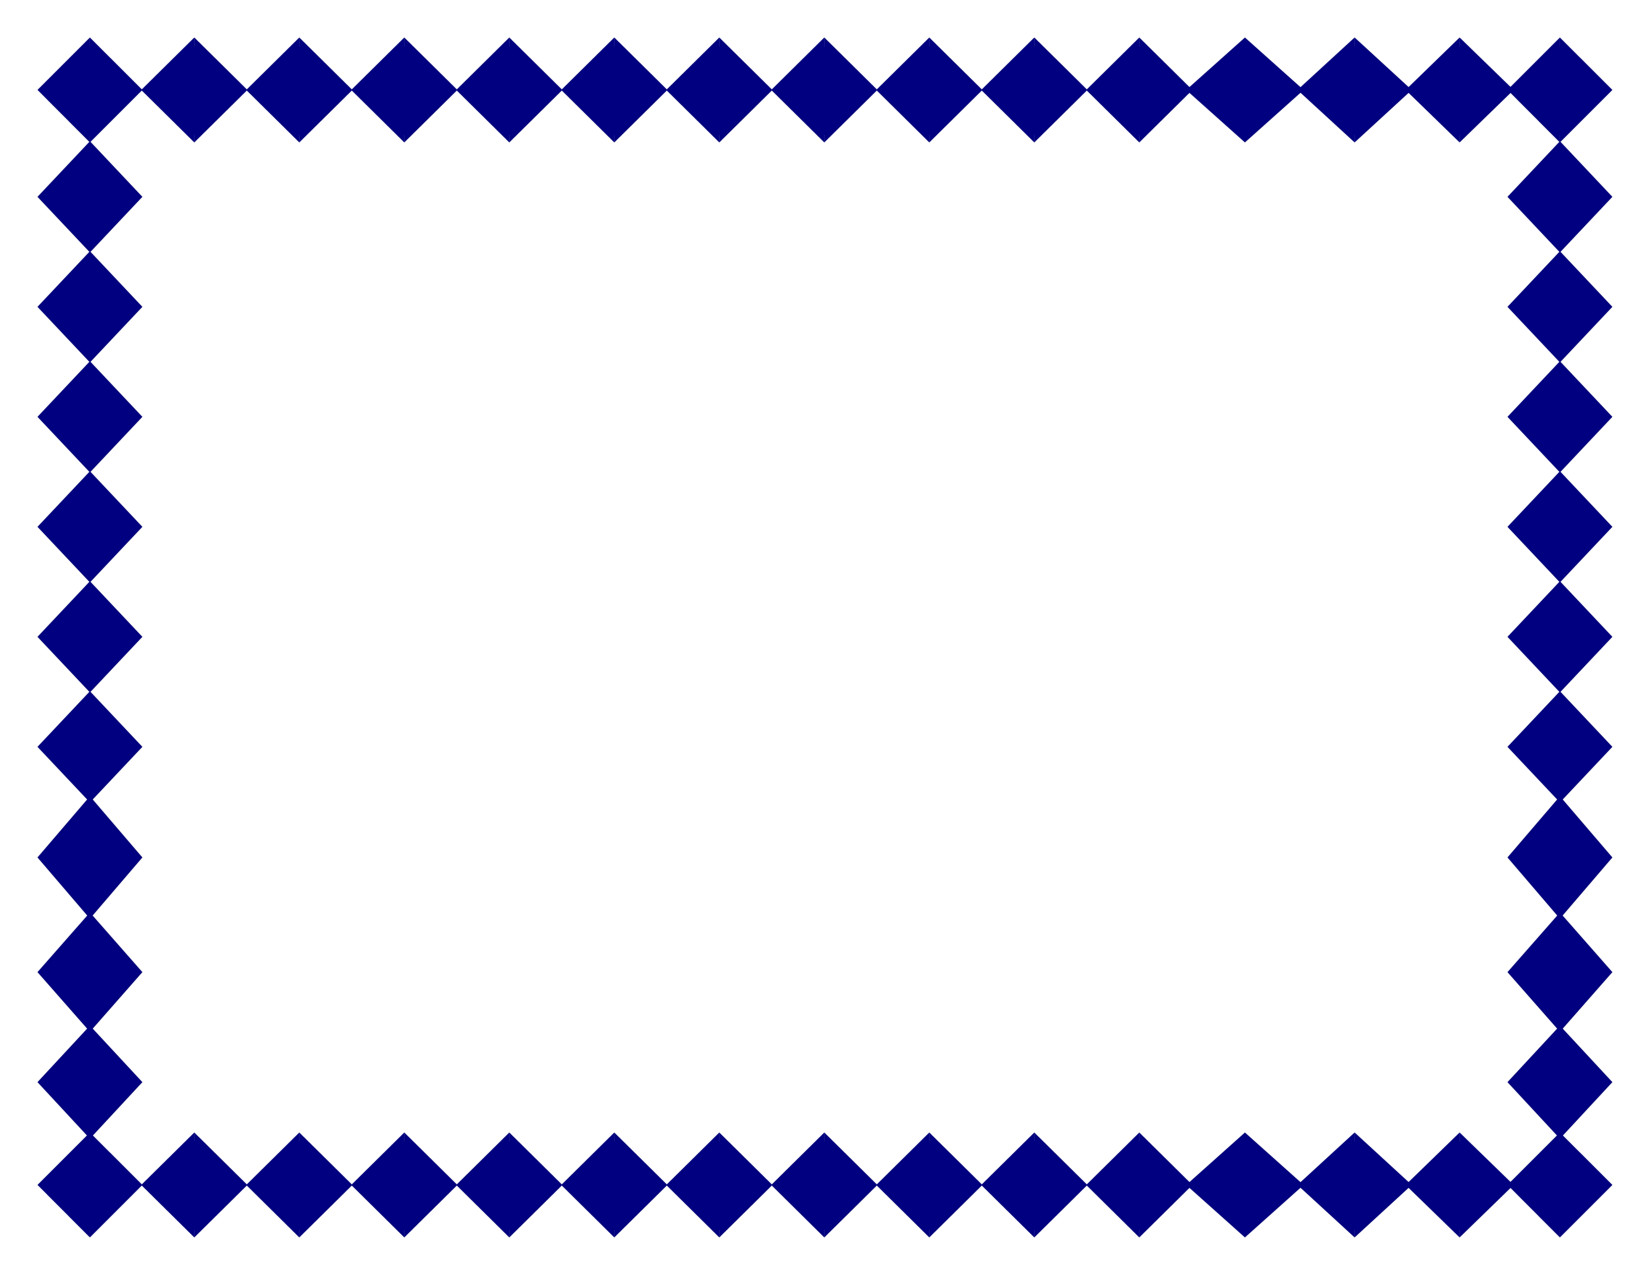 Border Template for Word Free Borders for Word Download Free Clip Art Free Clip